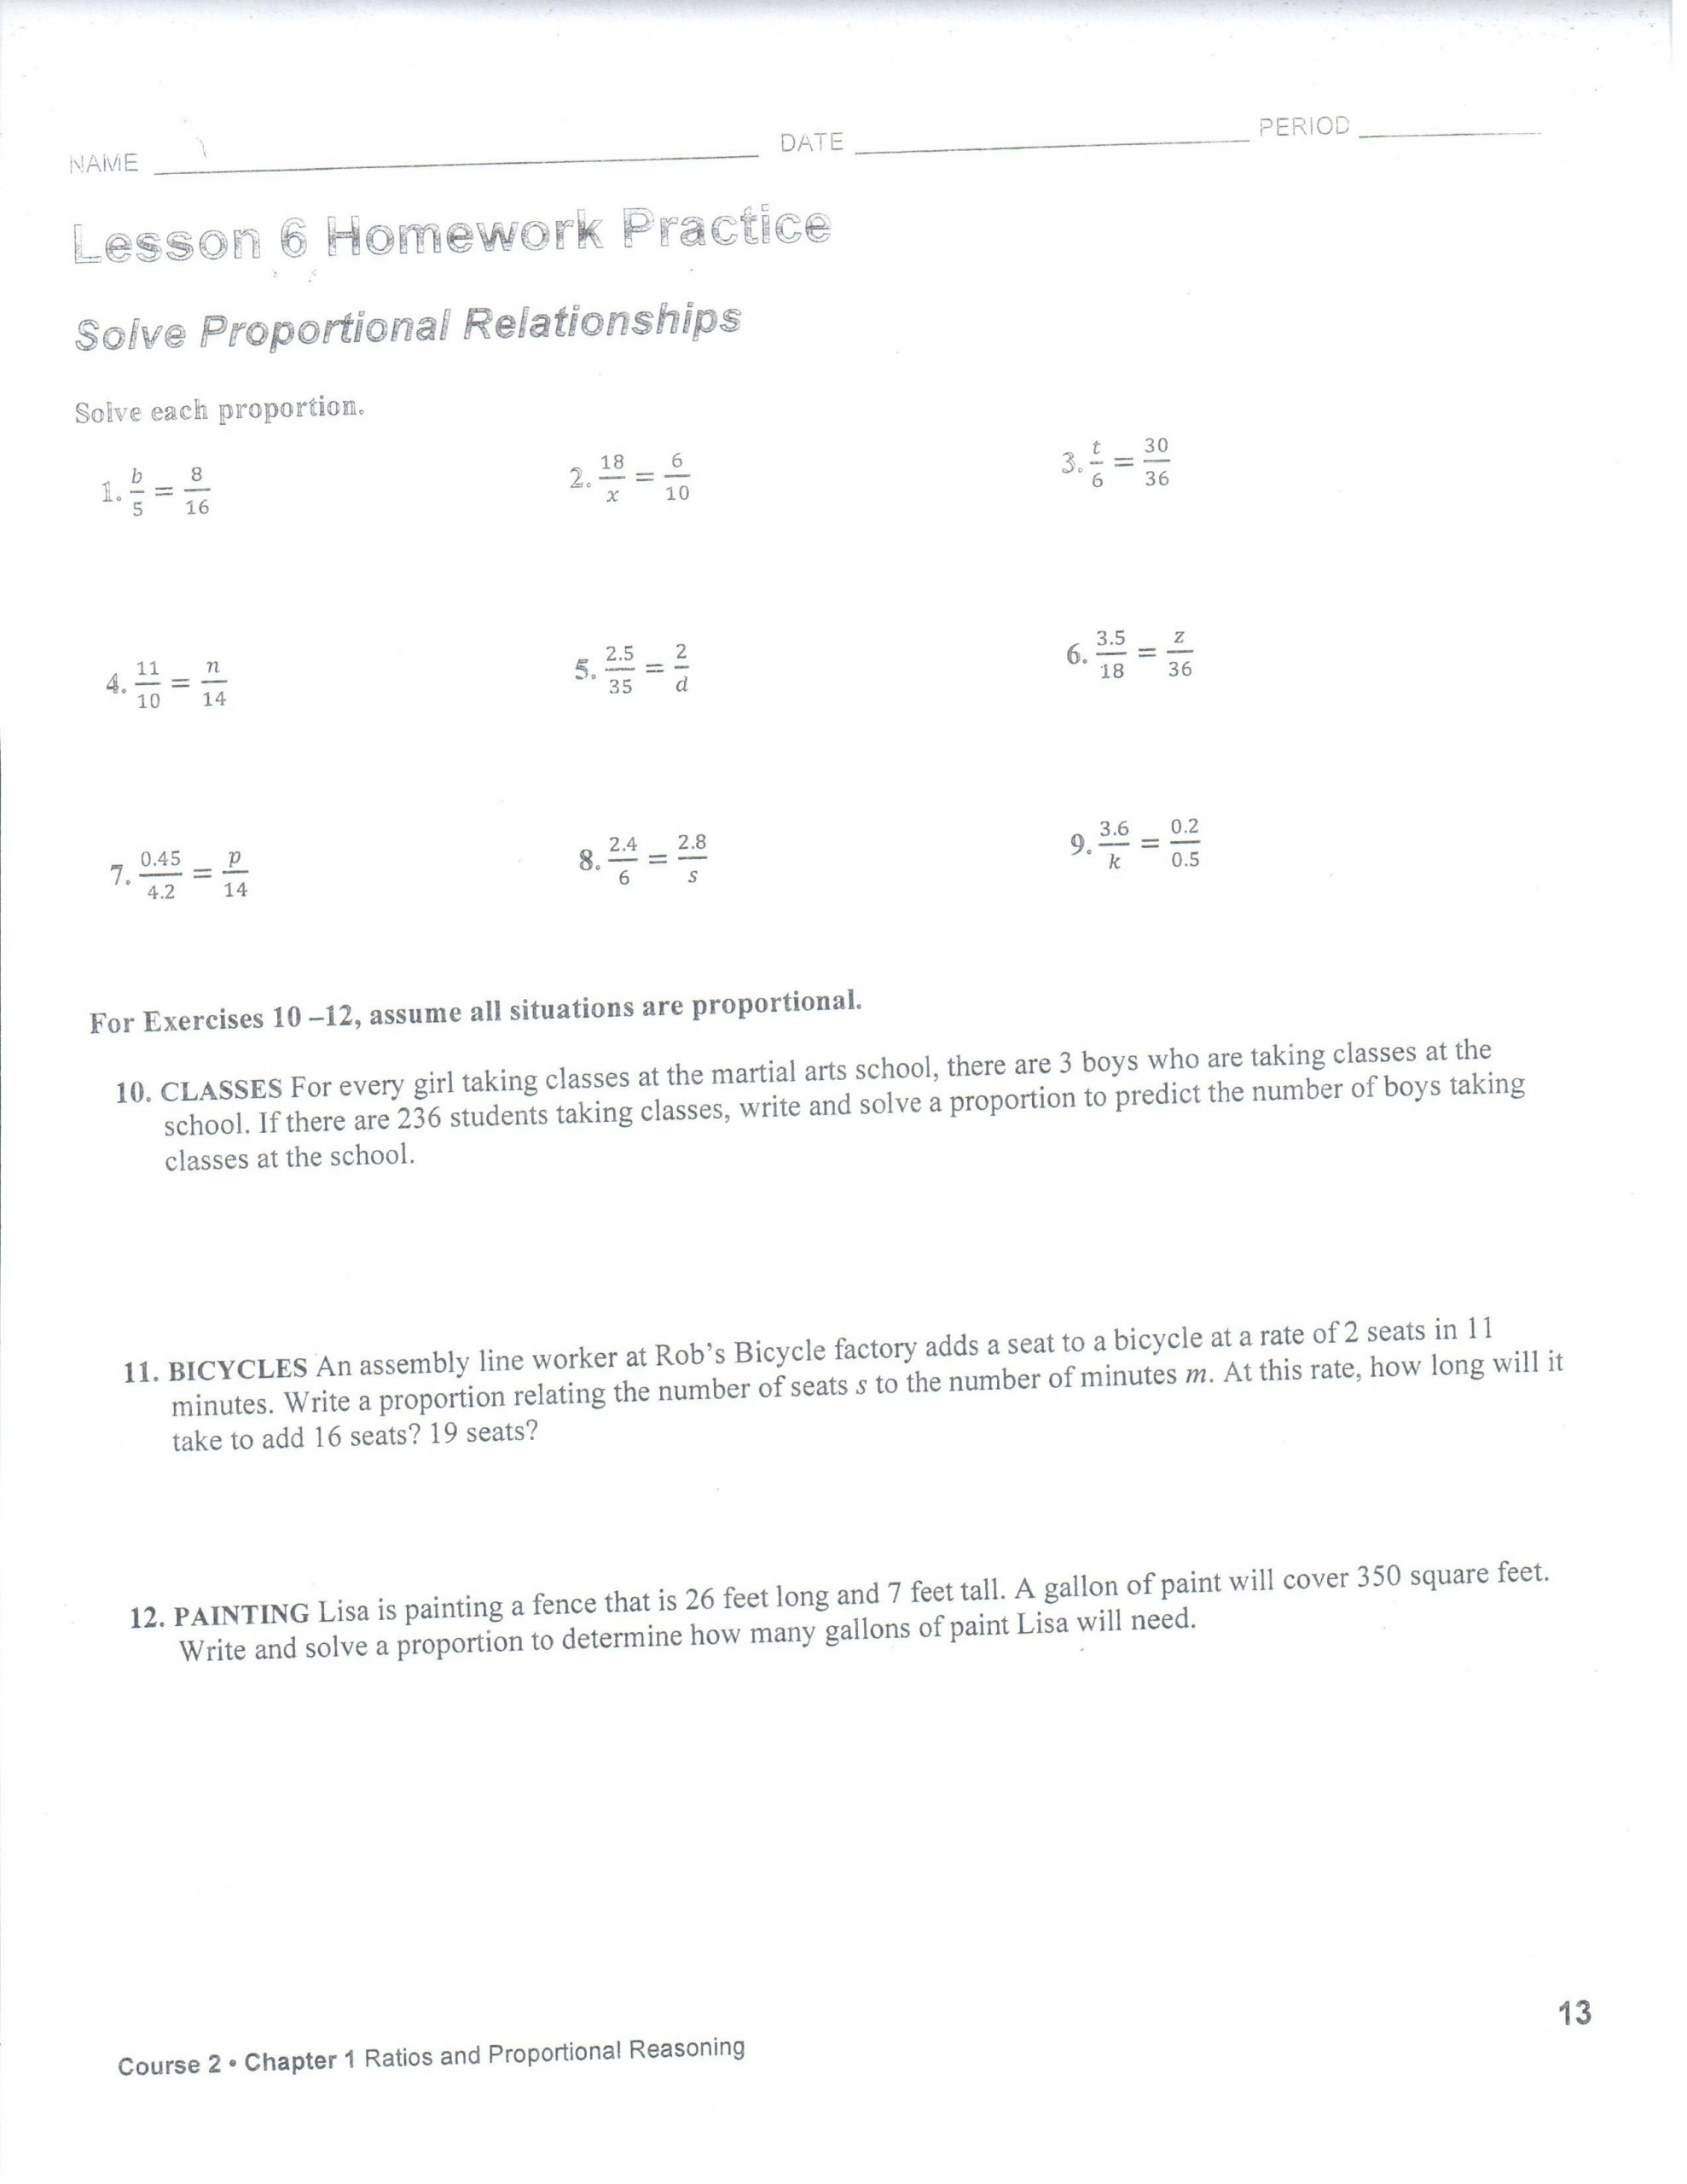 Sales Tax Worksheet 7th Grade 1 9 Lesson 6 Homework Practice Image by Coralporche9g